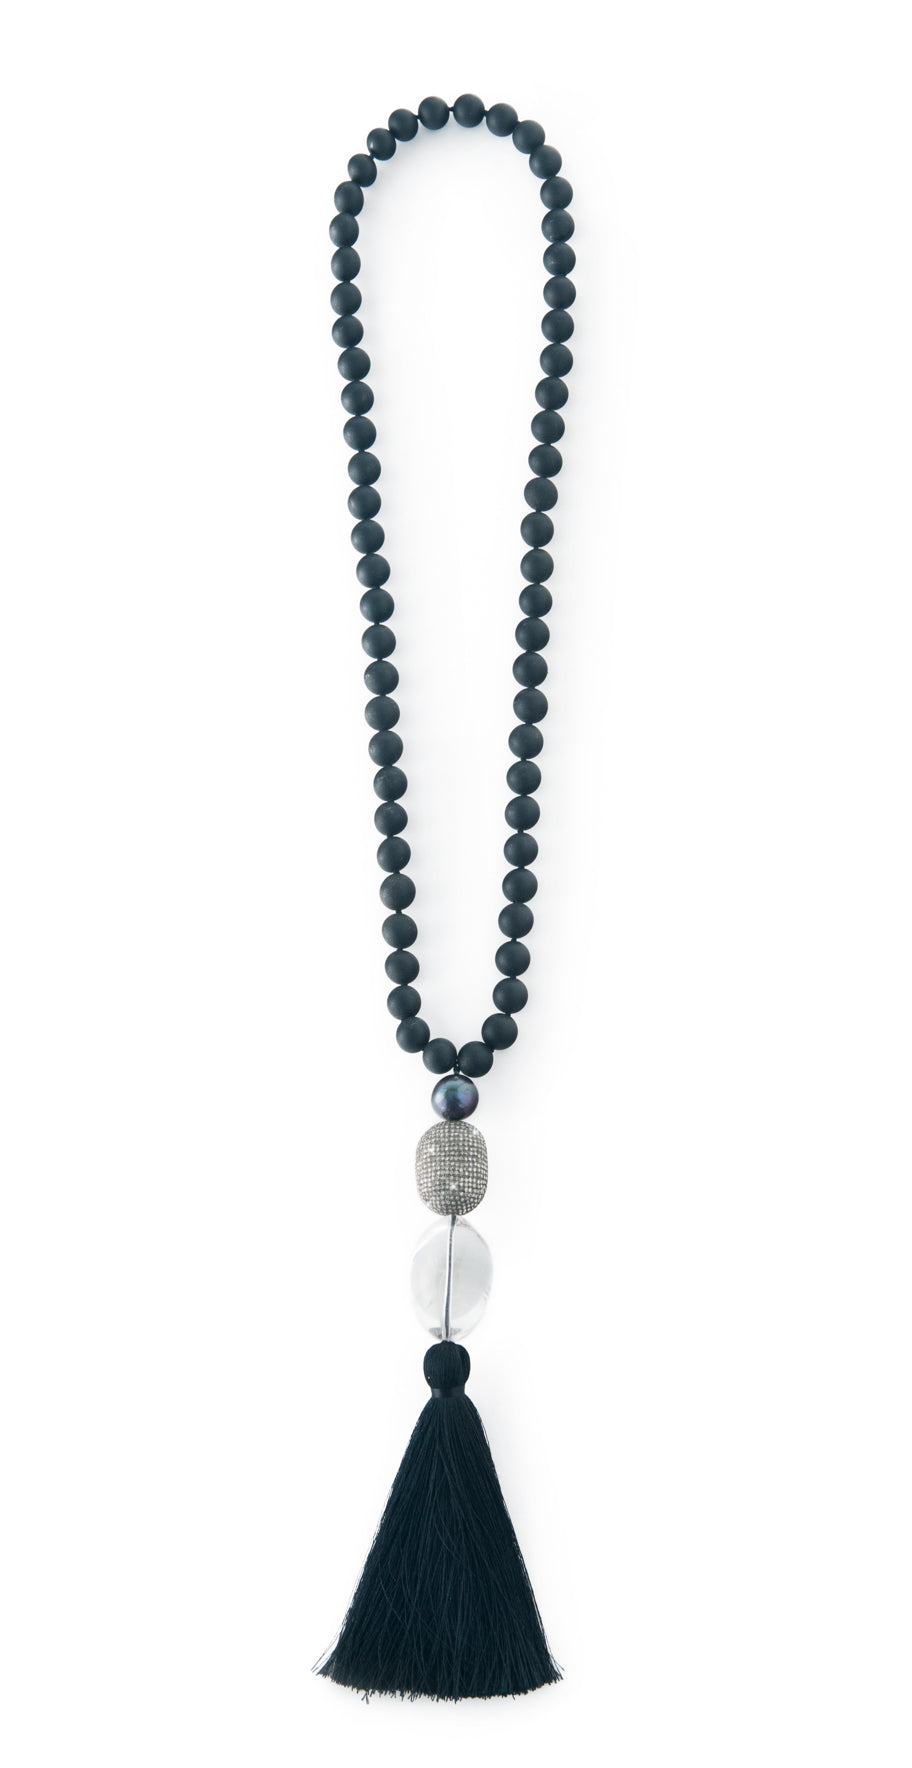 Black Diamonds and Pearls Mala Mala Necklace